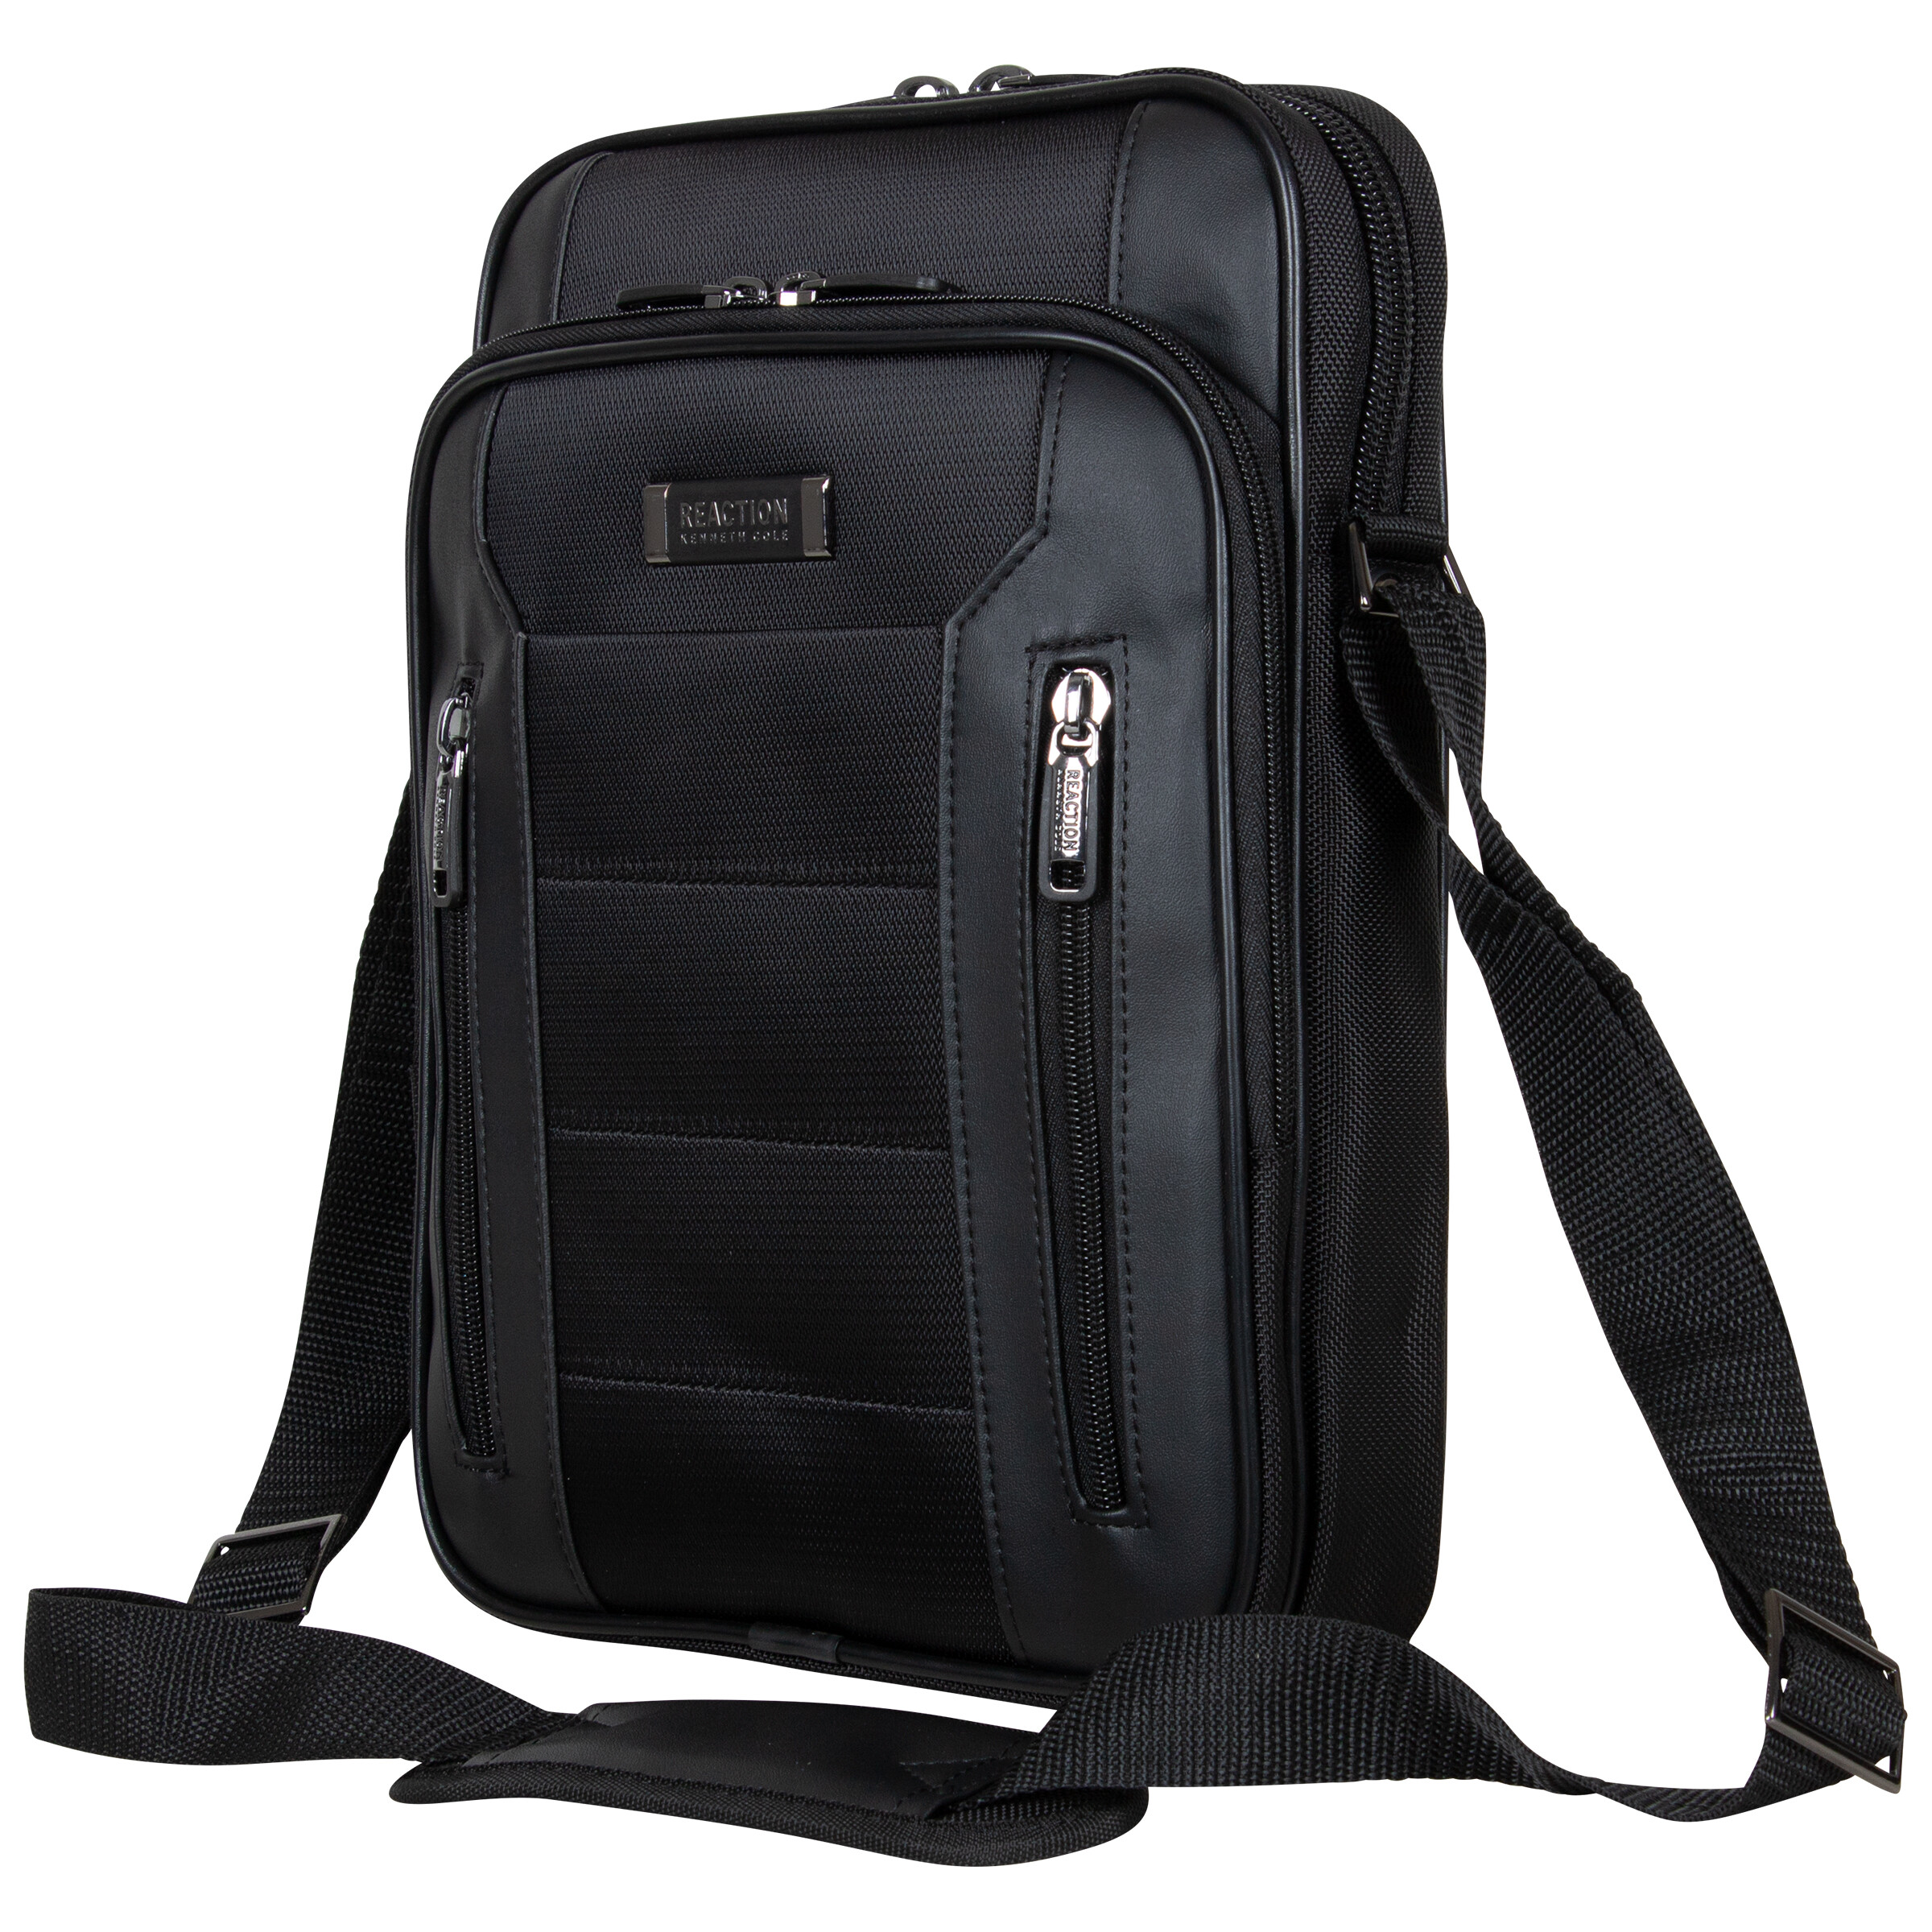 Kenneth Cole Reaction Top Zip Day Bag/Tablet, Computer Case (Black) Day Pack Bags